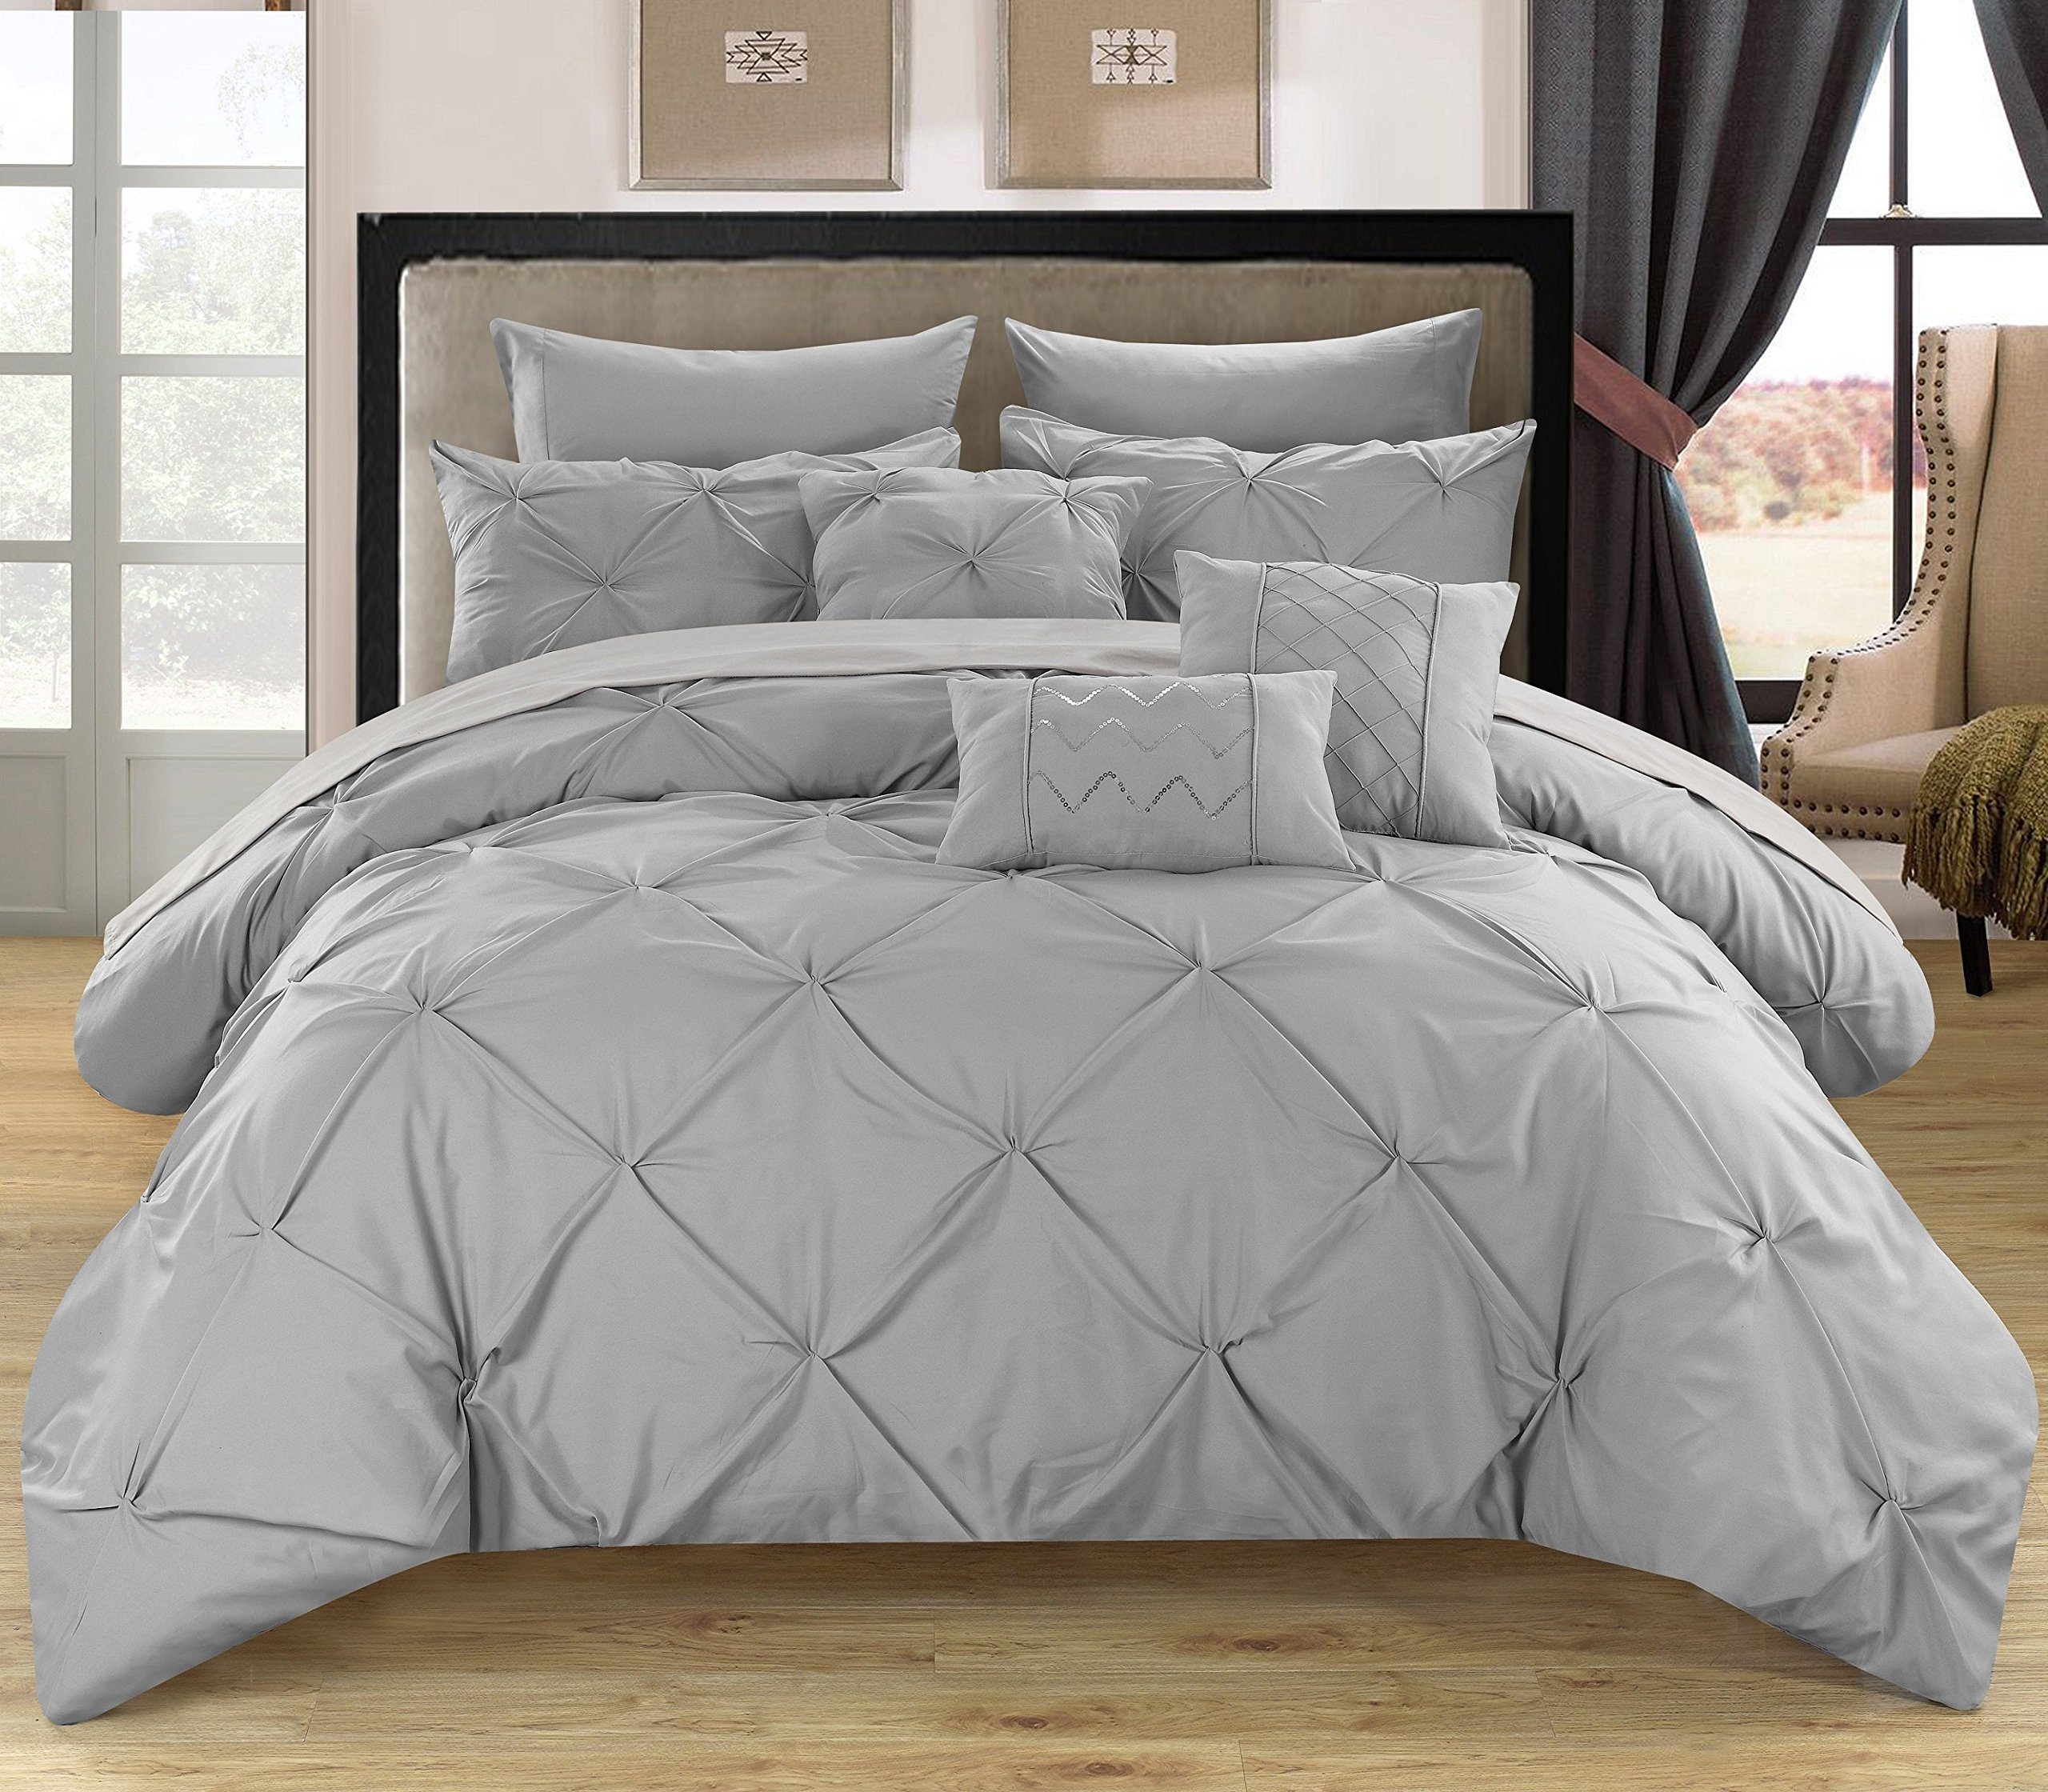 Chic Home Hannah 8 Piece Comforter Set Complete Bed In A Bag Pinch Pleated Ruffled Pintuck Bedding with Sheet Set And Decorative Pillows Shams Included, Twin Silver